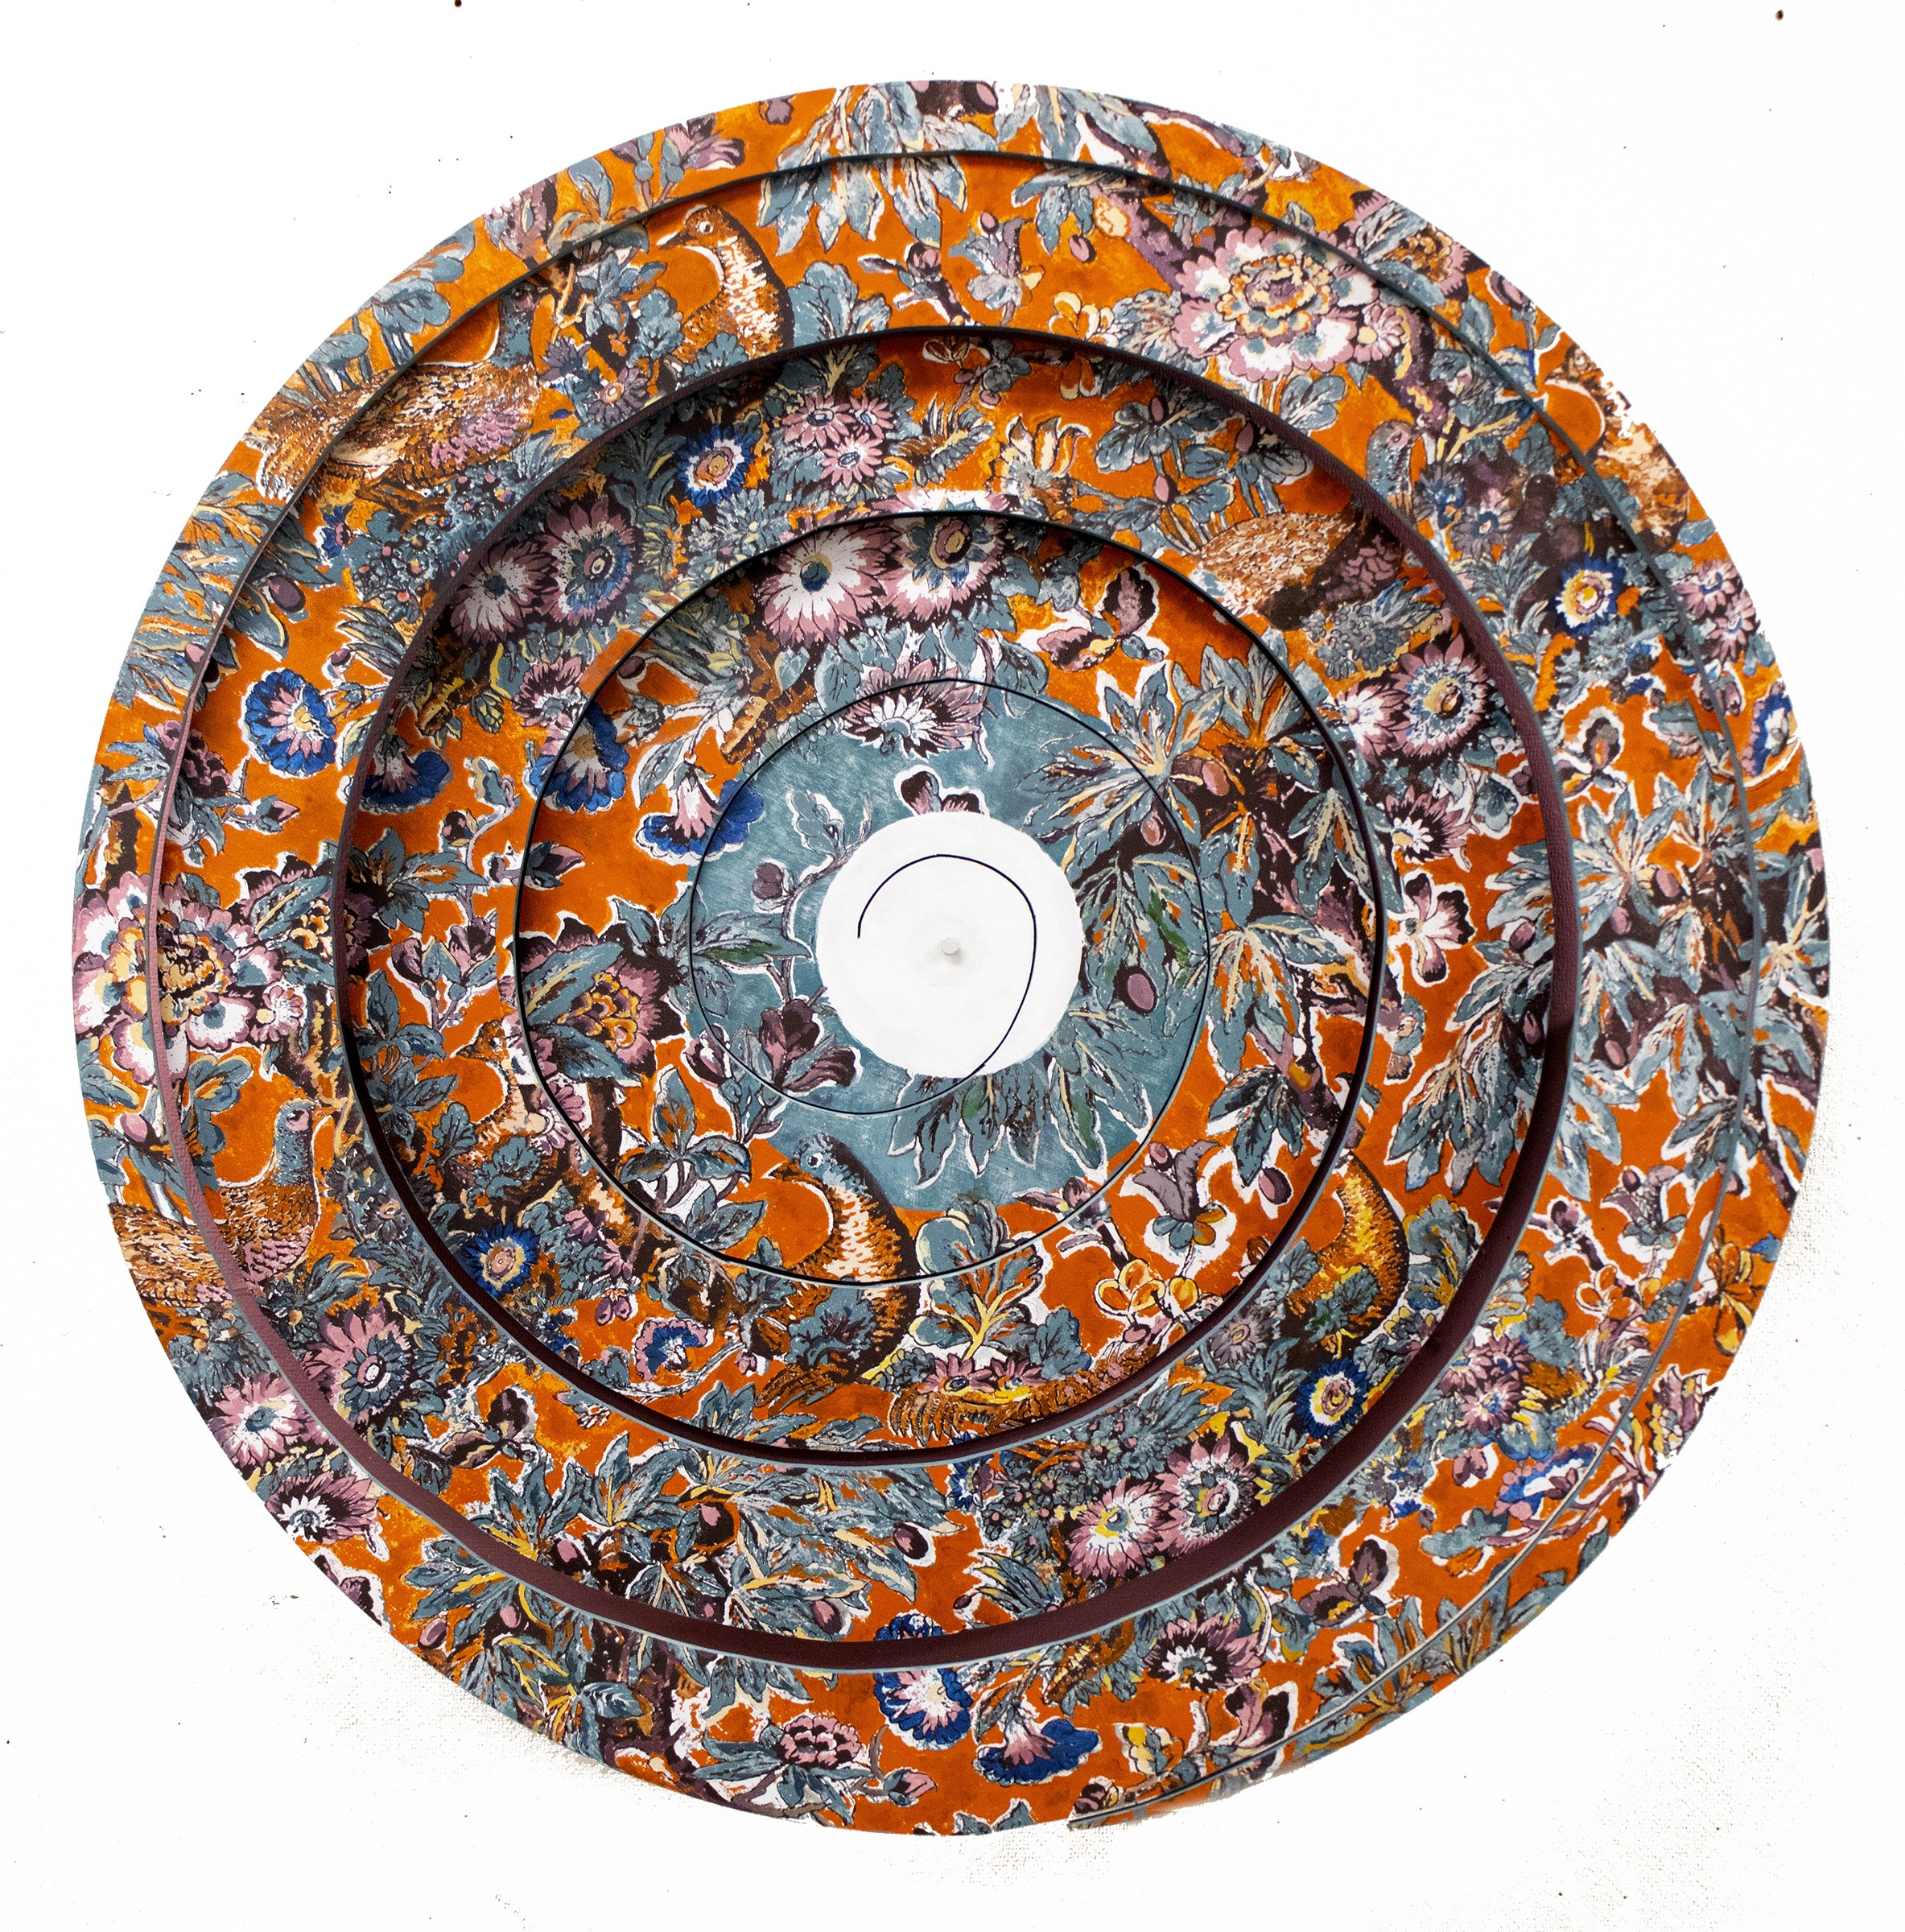 Chintz to Chintzy is a vibrant screenprint on a wooden spiral that stretches outward from the wall. The piece consists of warped motifs of flowers, branches, and birds. The center has a small white circle which then blends into the surrounding pattern.